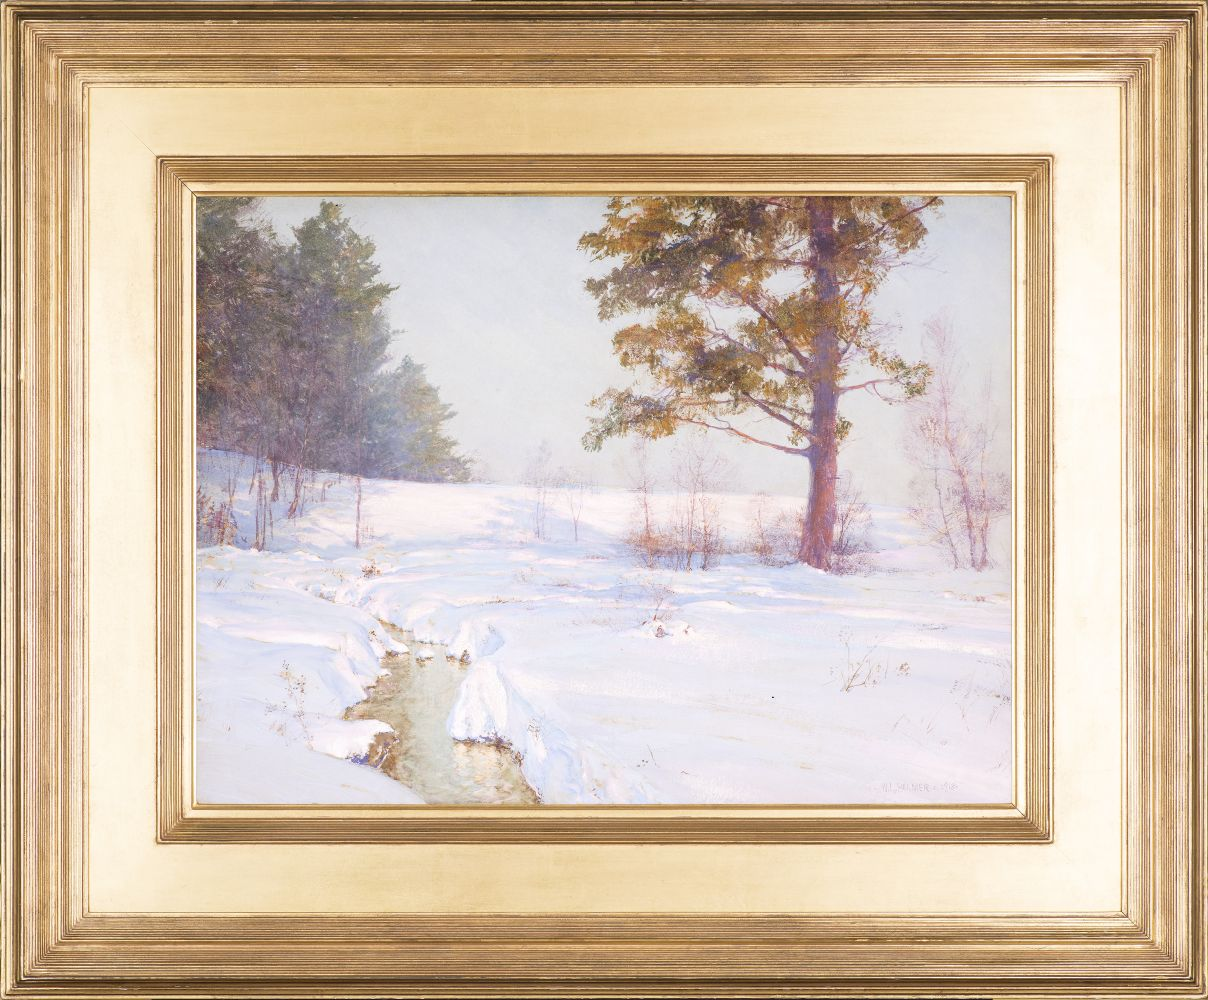 Walter Launt Palmer (1854–1932), Stream in Winter, 1913, watercolor and gouache on paper, 18 x 24 in., signed and dated lower right: W. L. Palmer 1913 (framed)